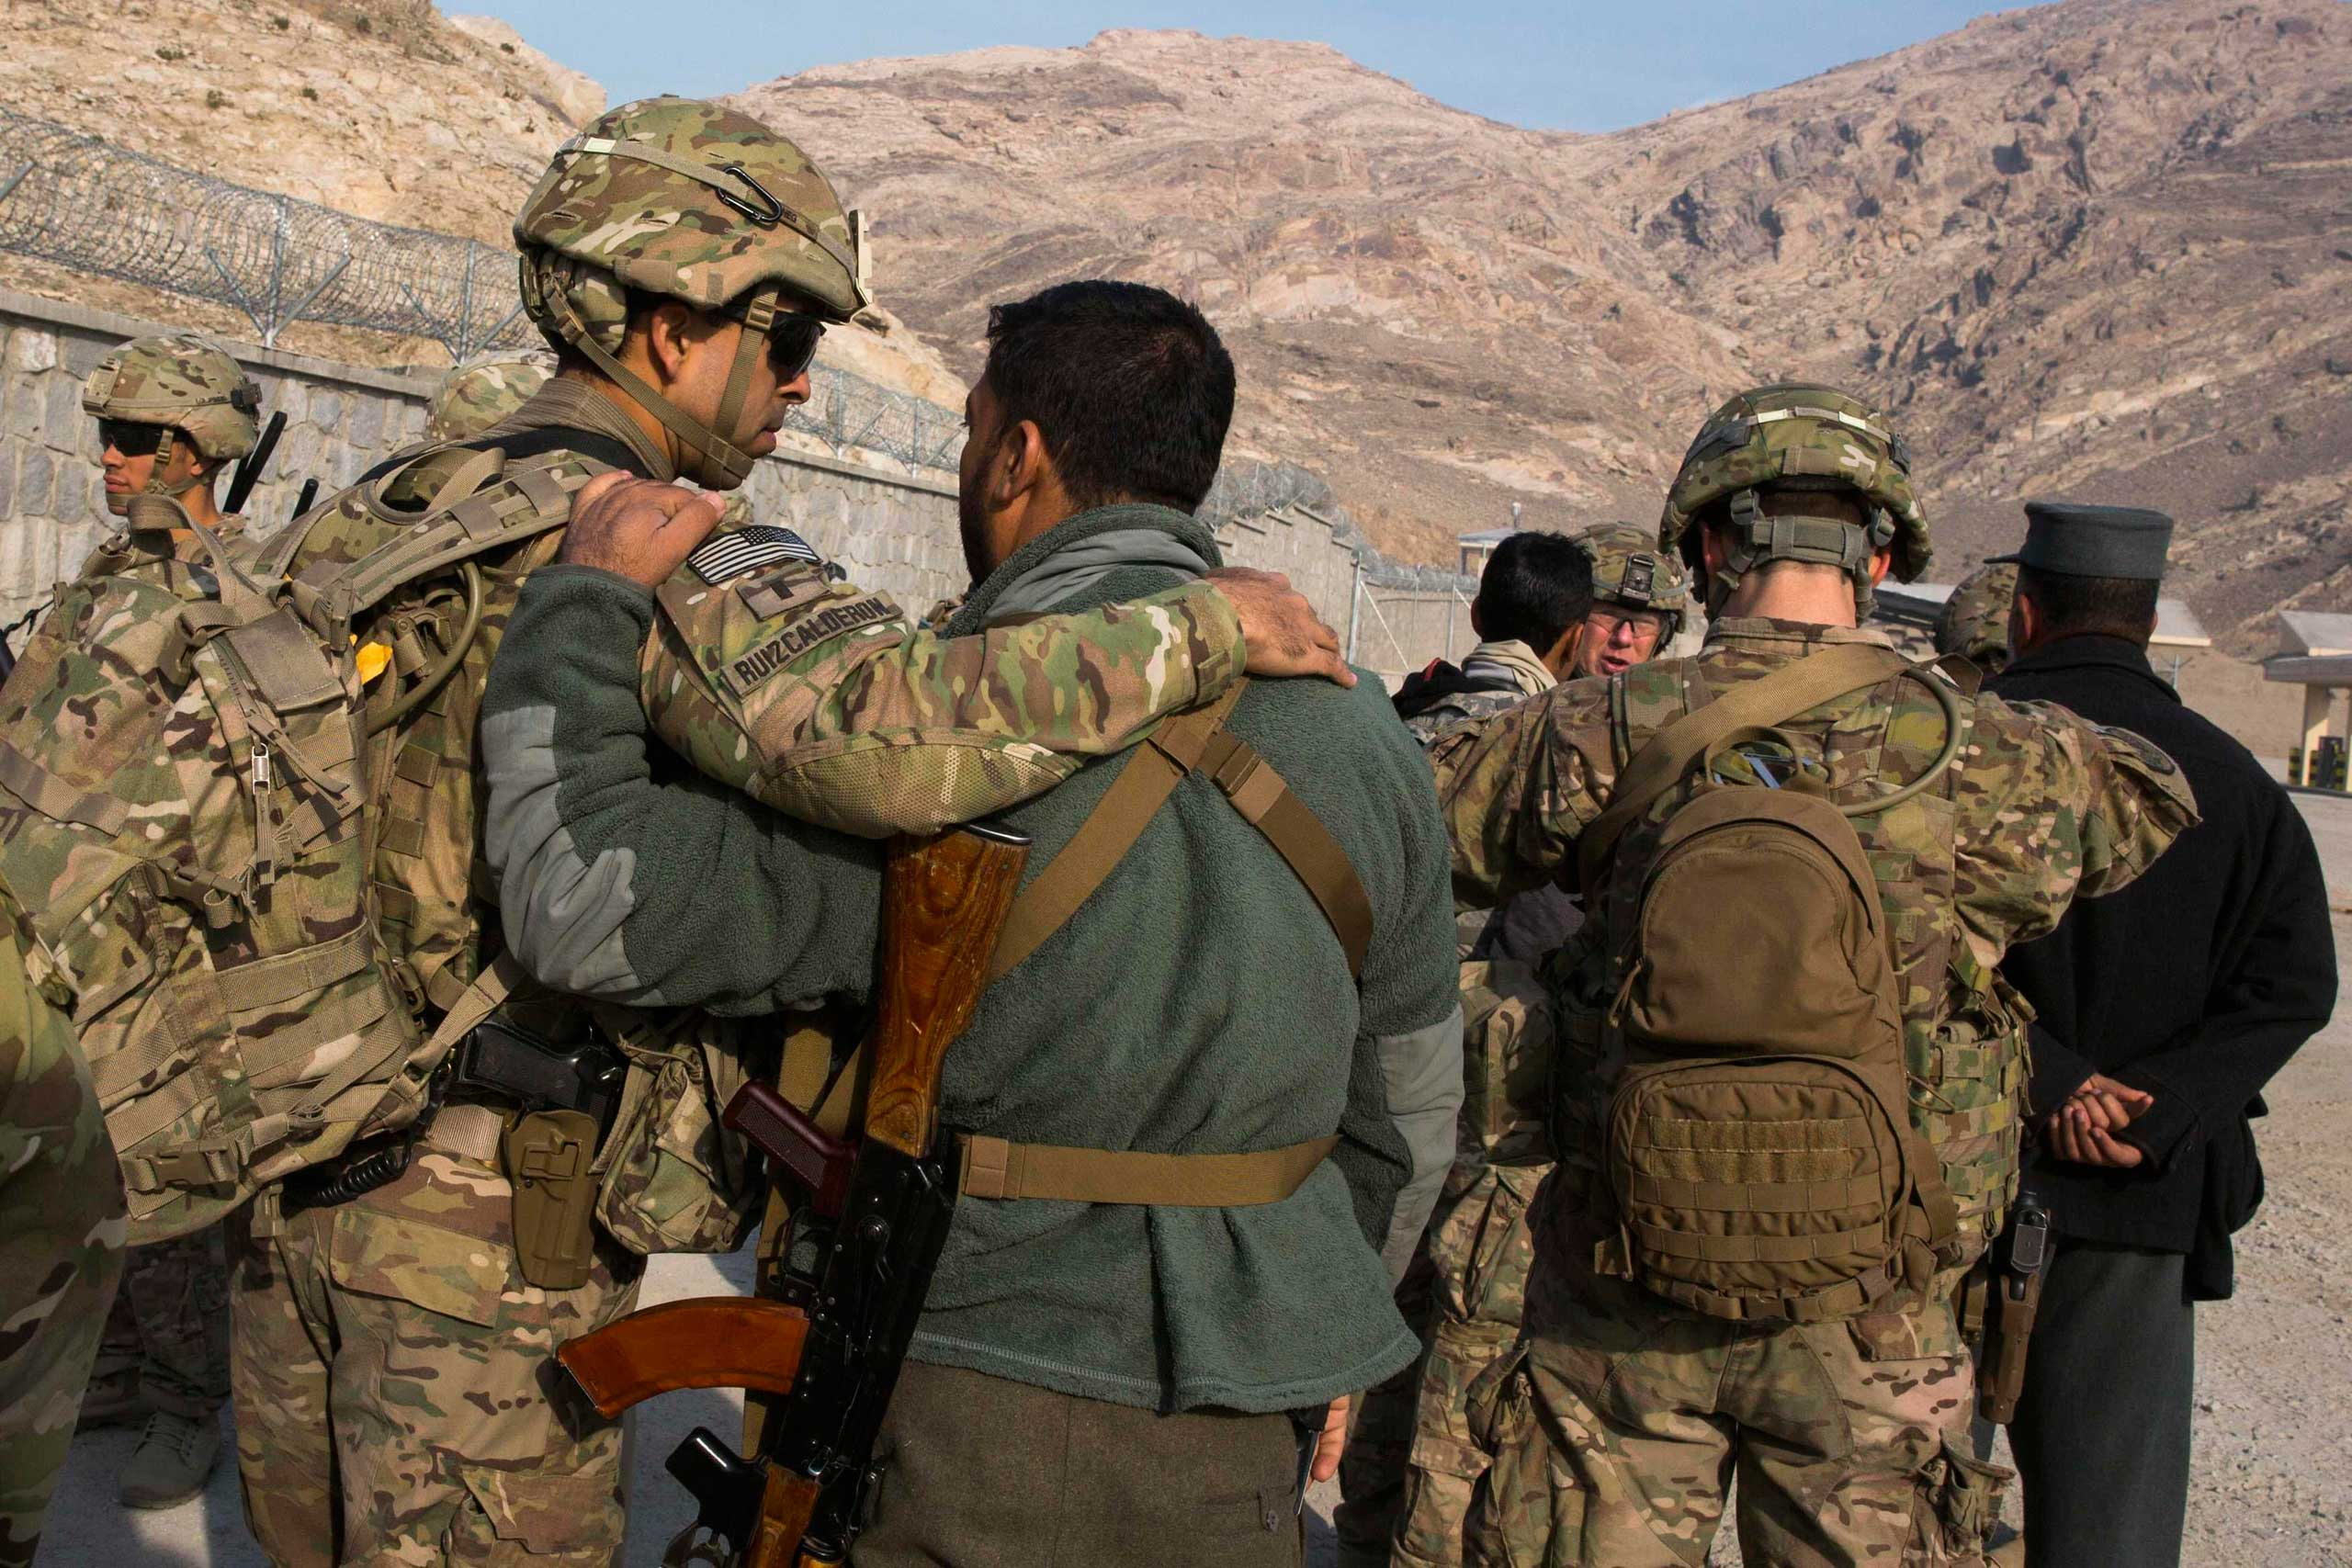 U.S. soldiers from the 3rd Cavalry Regiment greet their Afghan police counterparts during an advising mission near Jalalabad in the Nangarhar province of Afghanistan on Dec. 20, 2014.